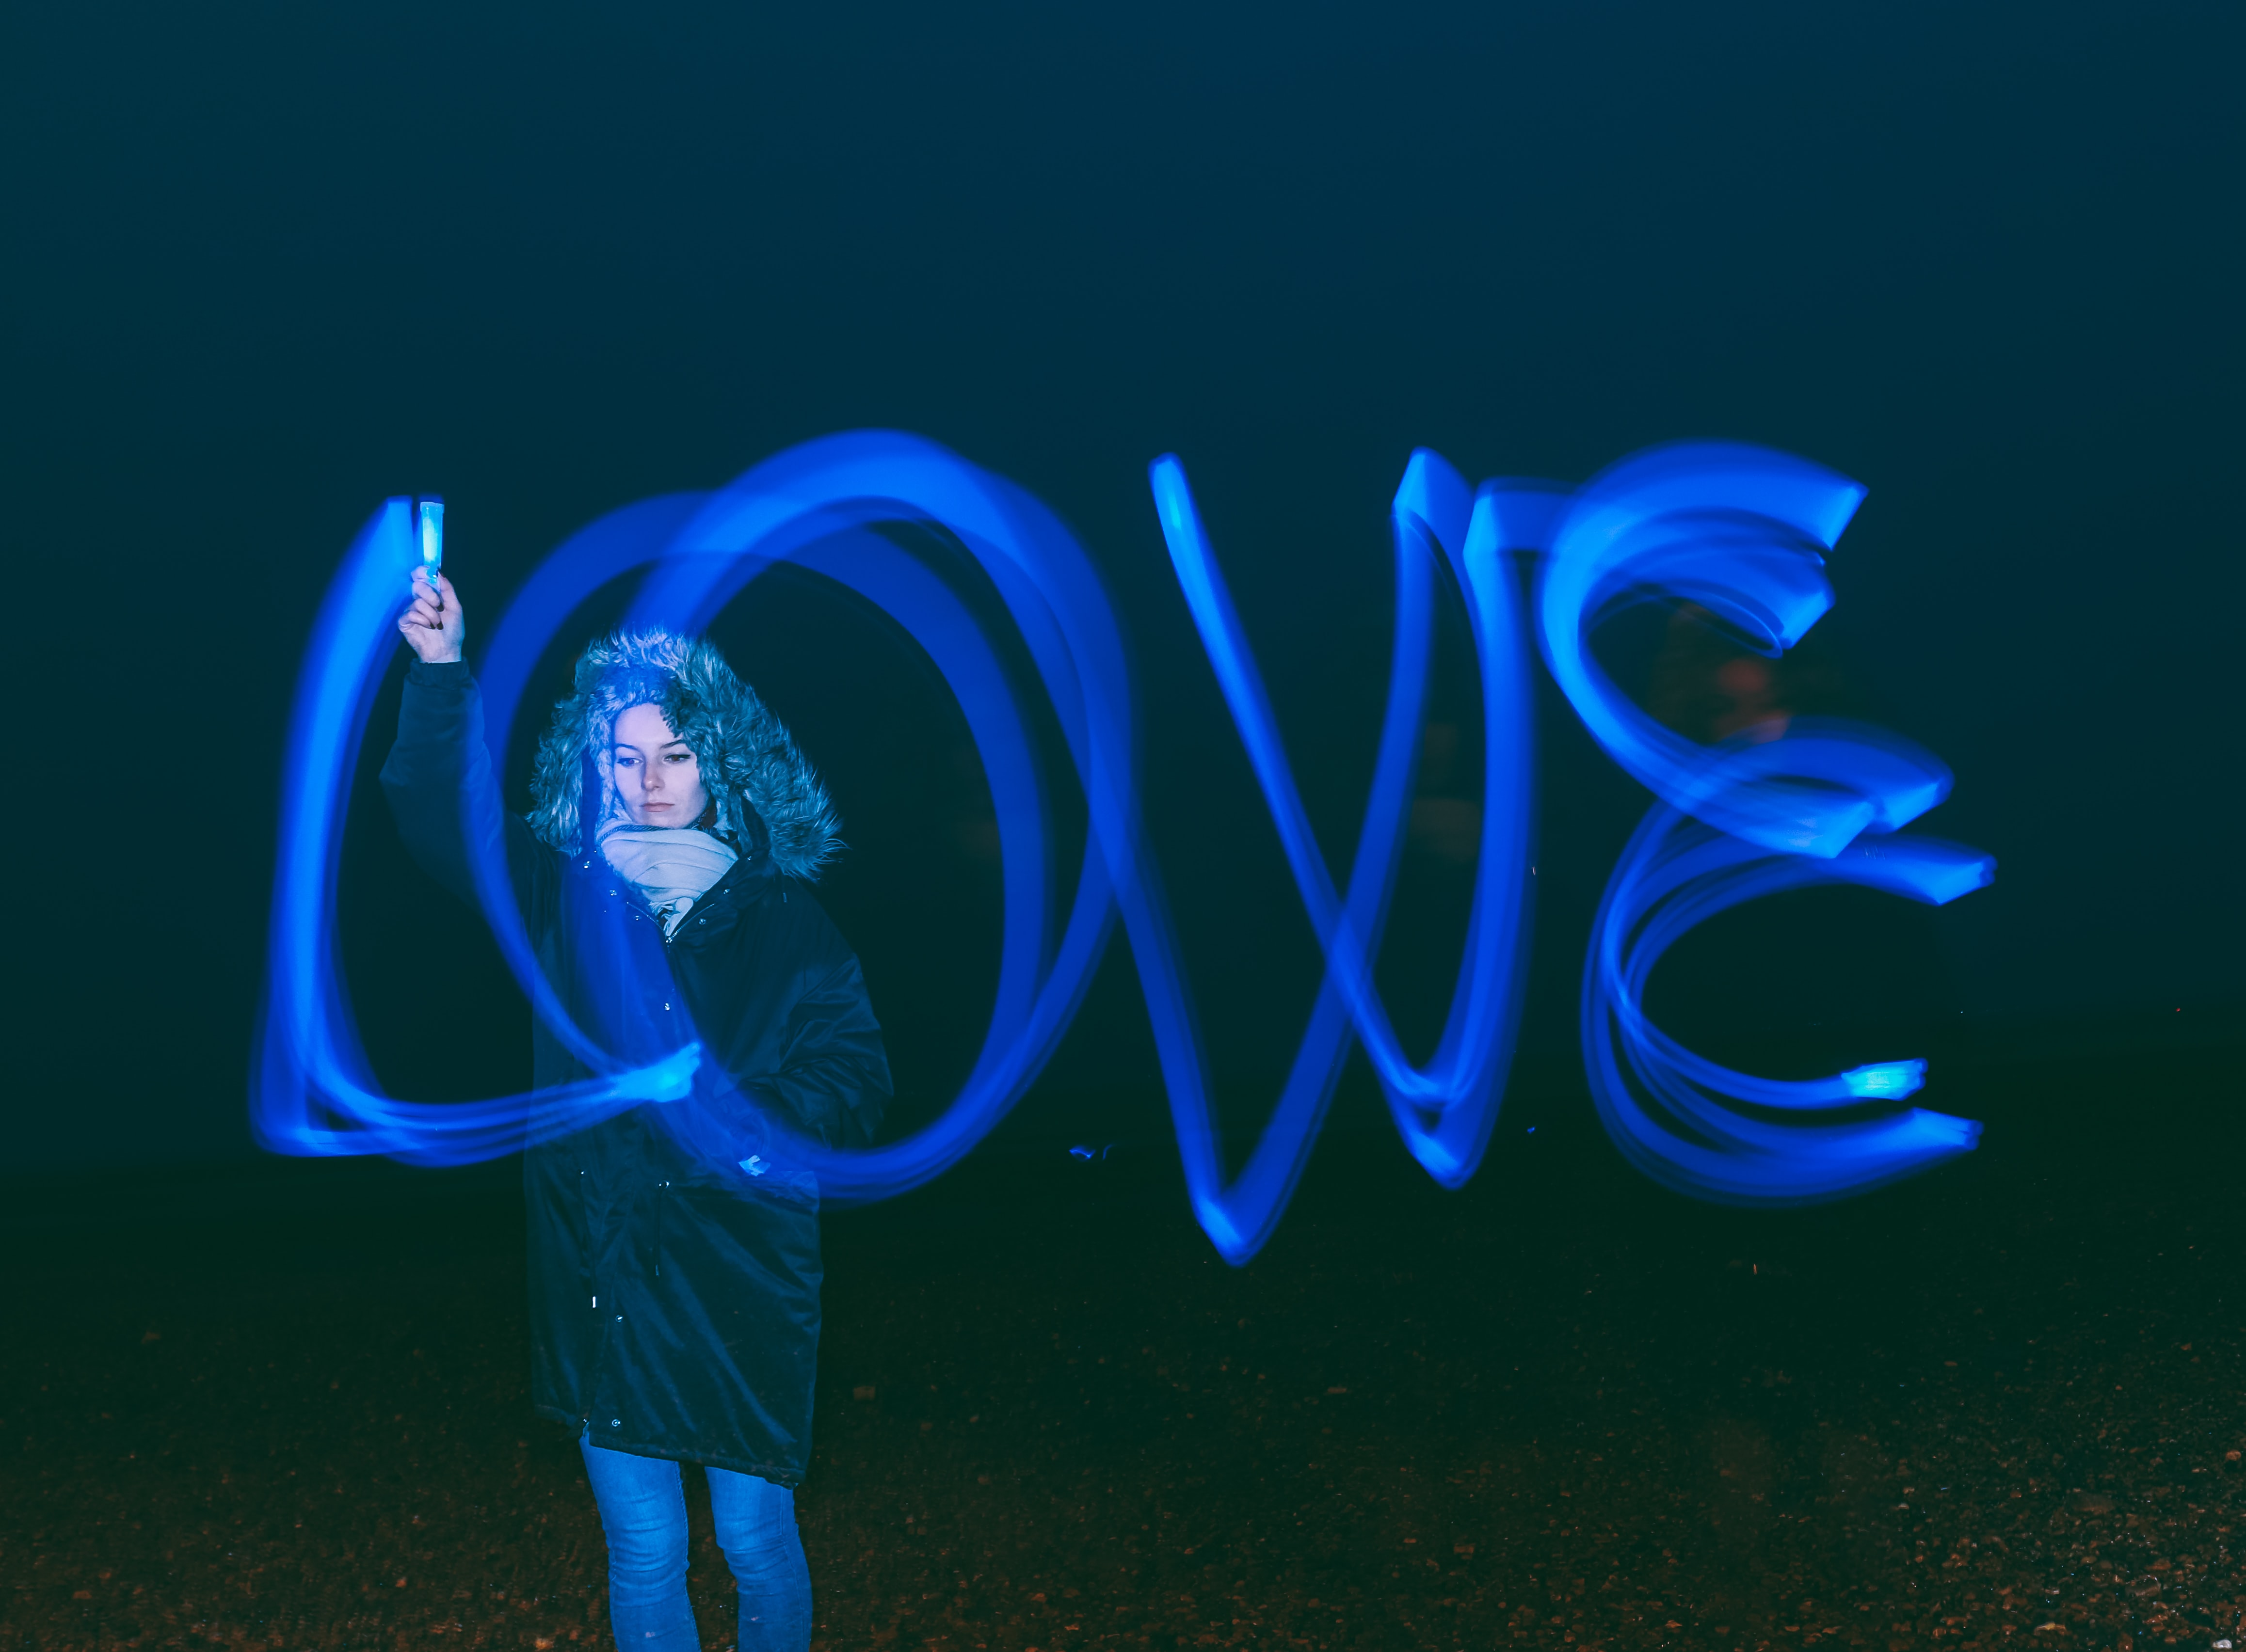 high exposure photo of standing woman writing love word in the air using blue light pen